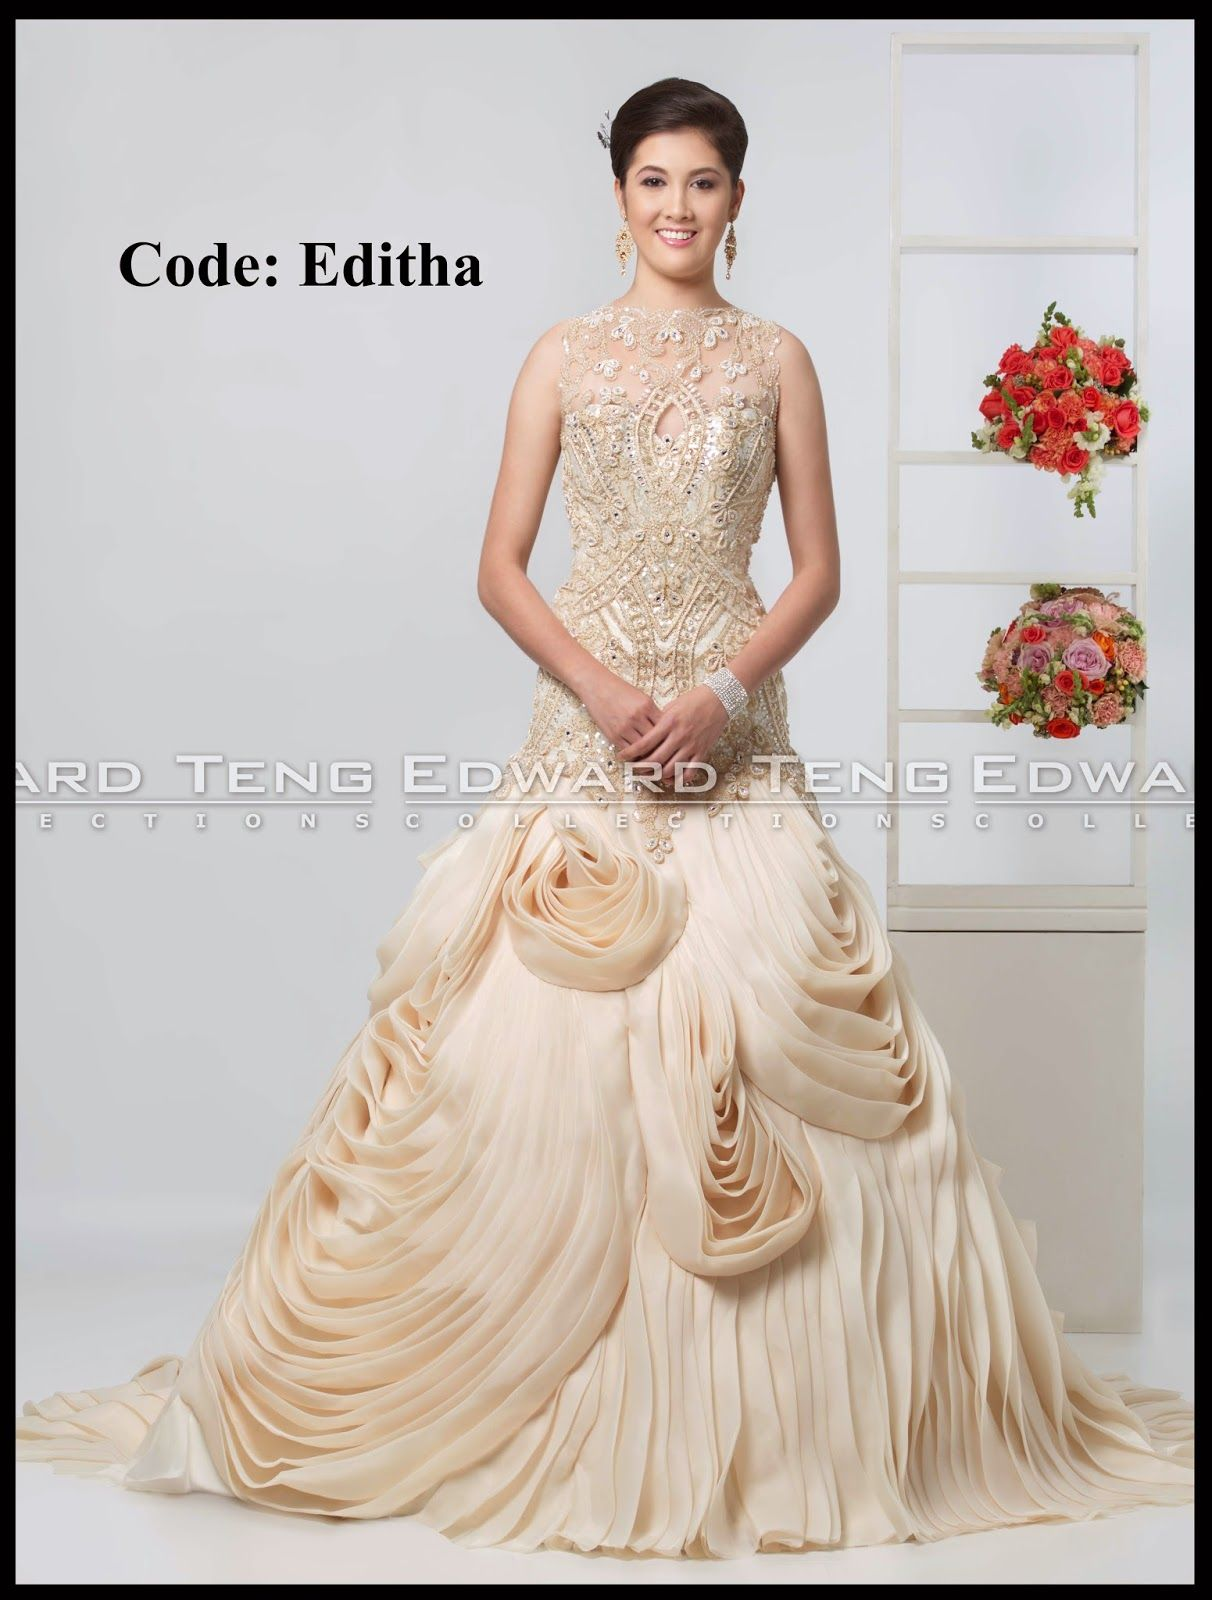 js prom by edward teng | philippines wedding gown designer ...